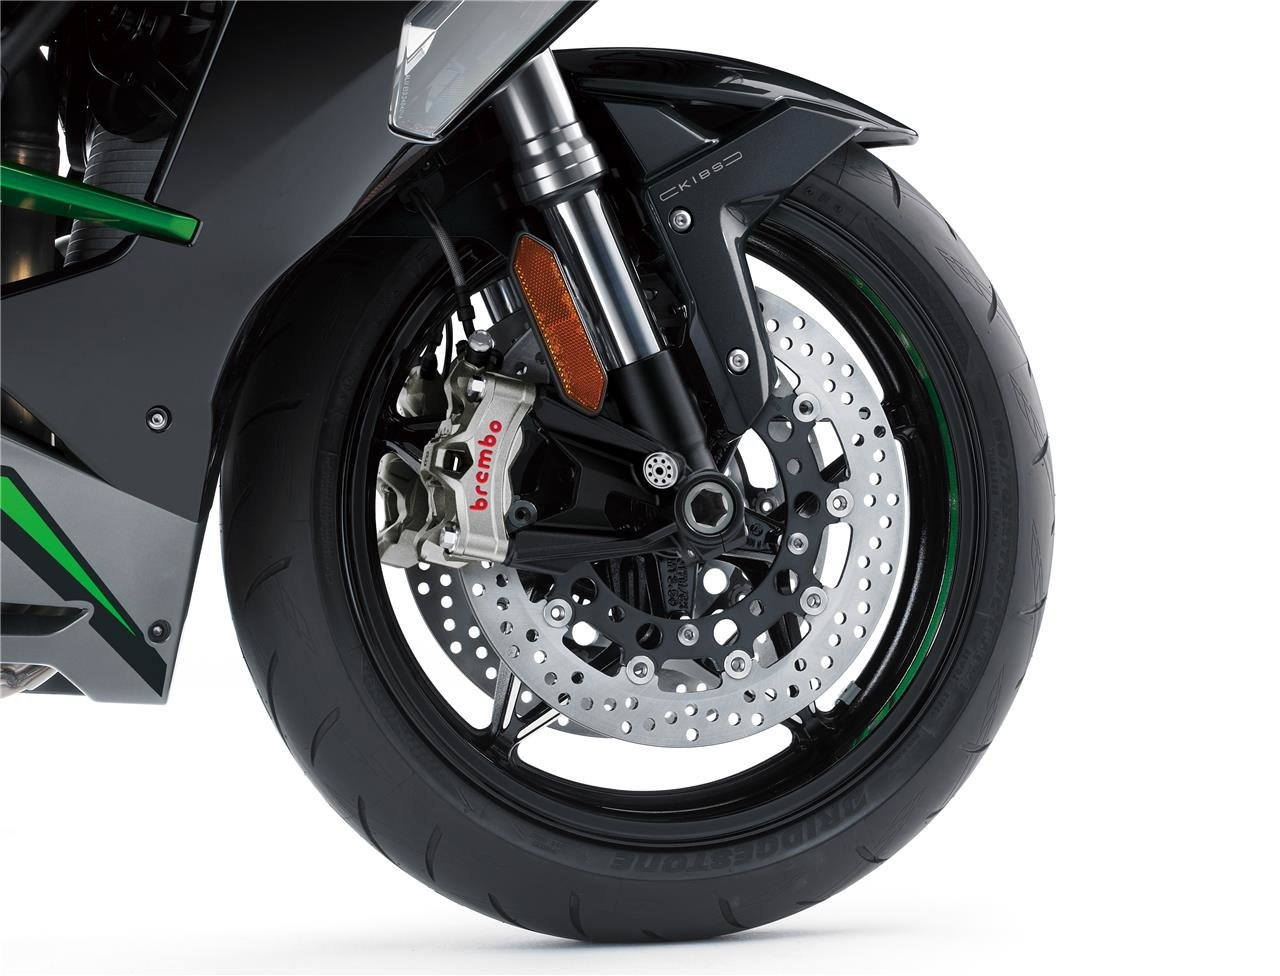 New 2020 Kawasaki Ninja H2 SX SE +*£1,000 PAID, FREE Deliver For Sale (picture 6 of 6)